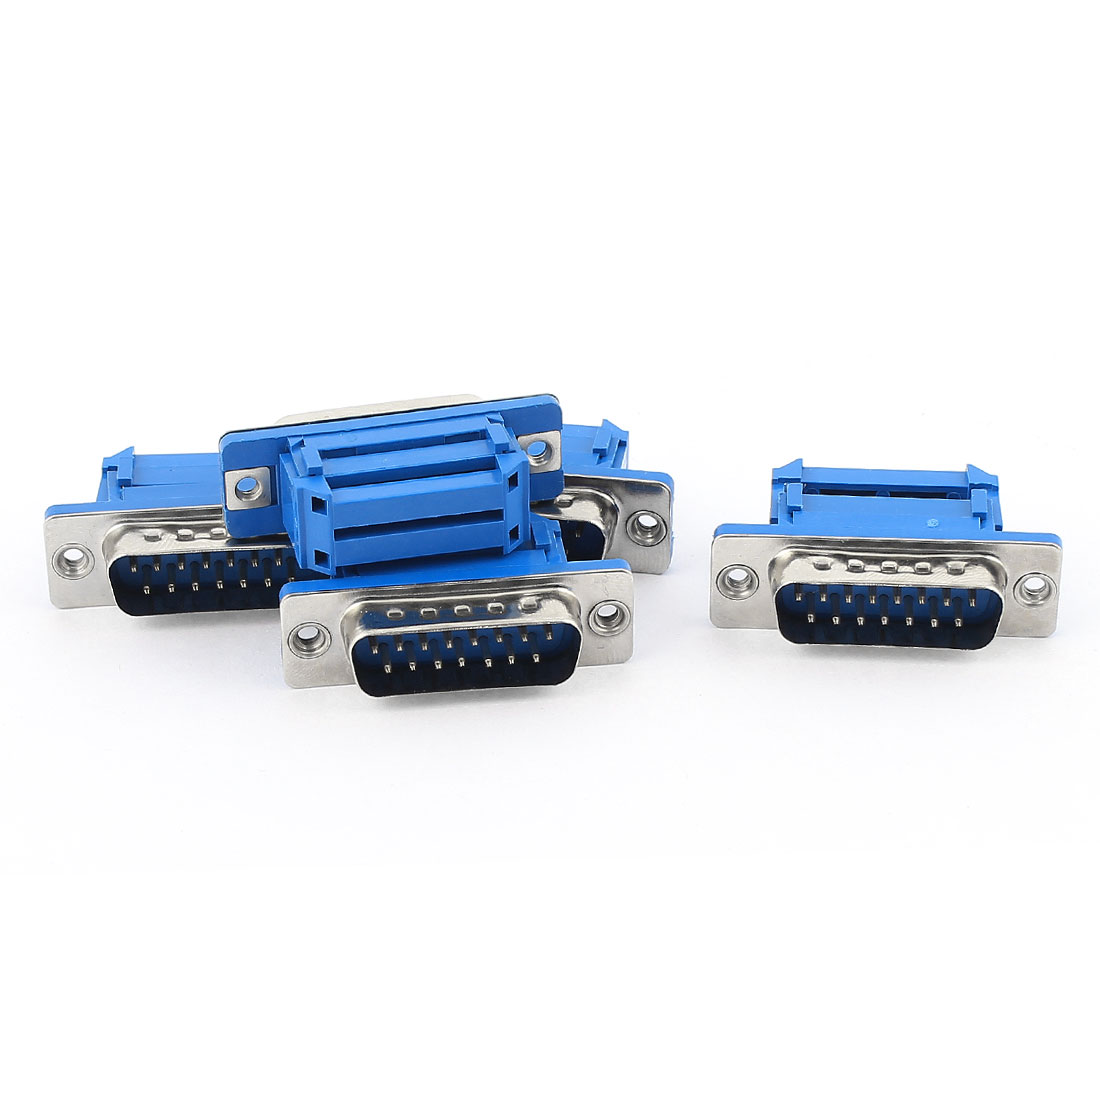 5pcs D-SUB DB15 15 Pin Male IDC Type Crimp Connector for Flat Ribbon Cable